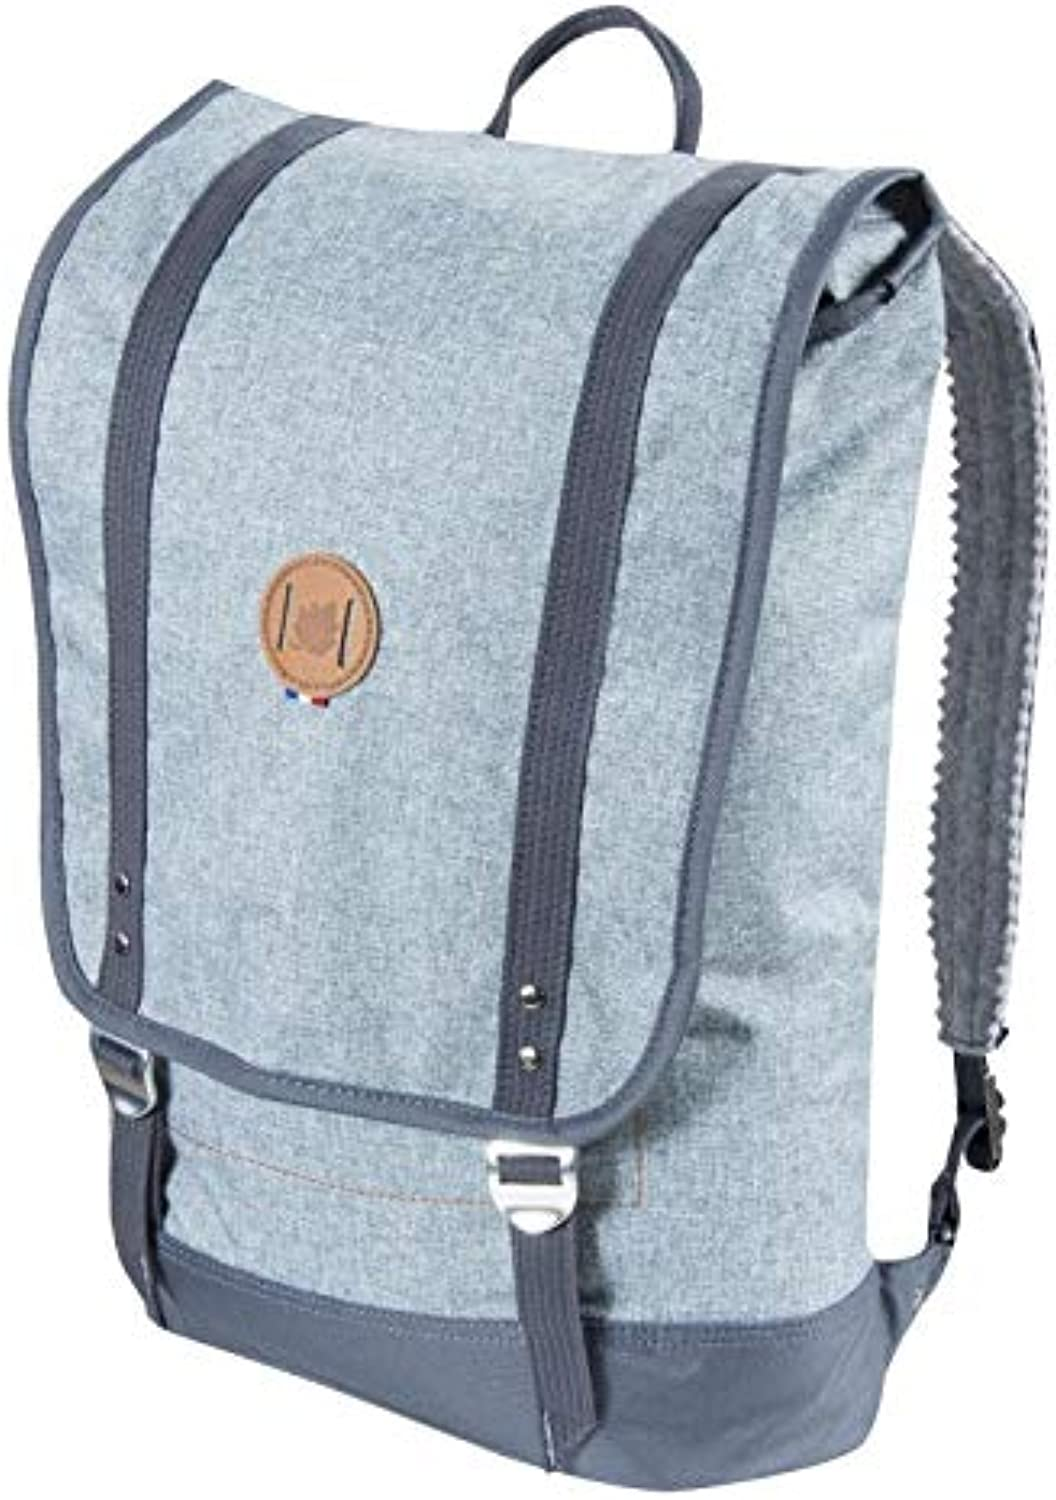 Lafuma L'Original Flap Backpack North sea Shadow 2019 Rucksack B07P8BRD3G  Globale Verkäufe